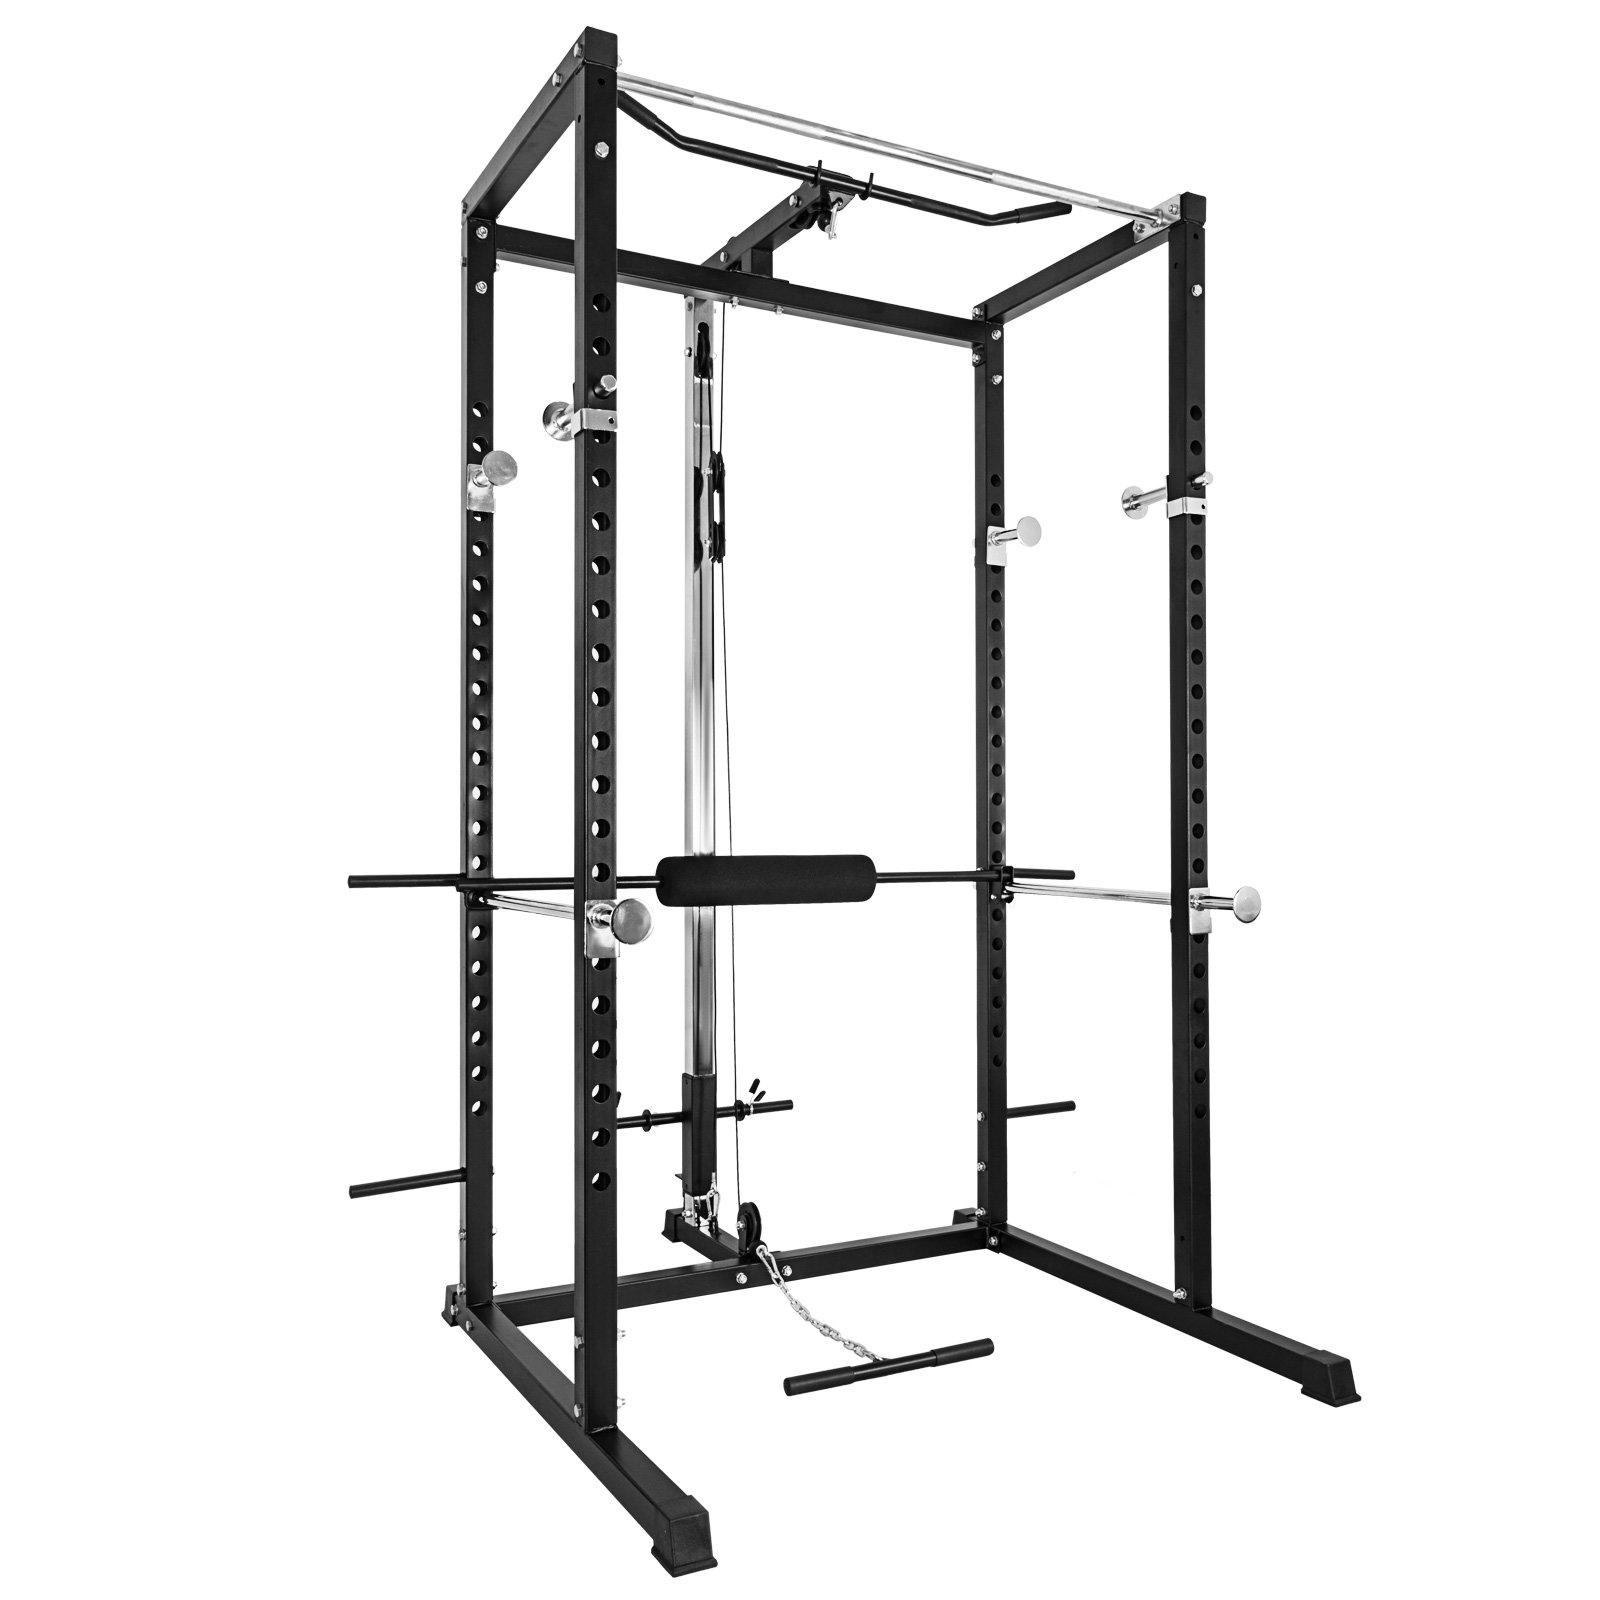 Popsport BD-7 Power Rack with LAT Pull Attachment Power Rack Olympic Squat Cage Solid Steel Construction Power Cage (BD-7) by Popsport